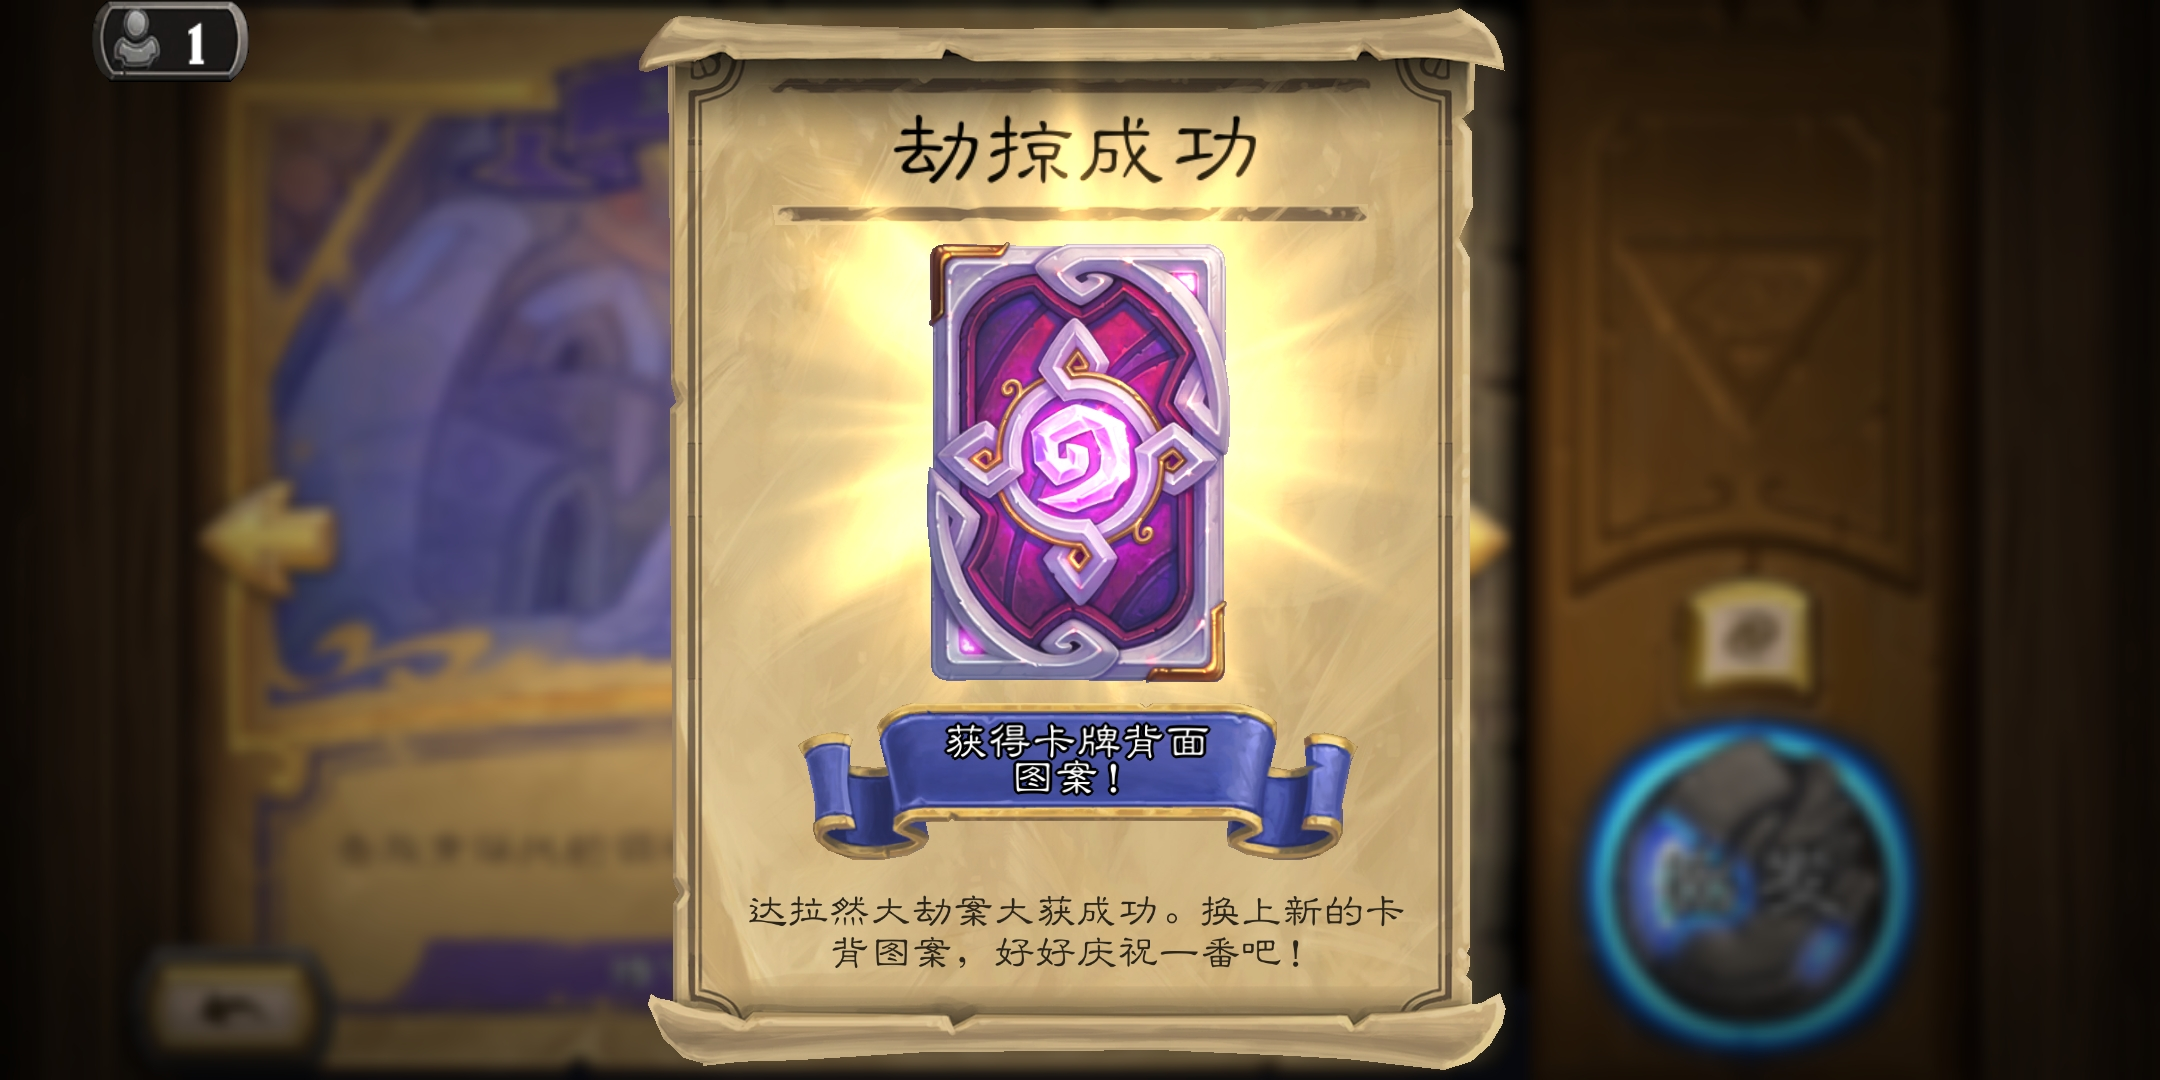 Screenshot_20190609_194045_com.blizzard.wtcg.hearthstone.jpg